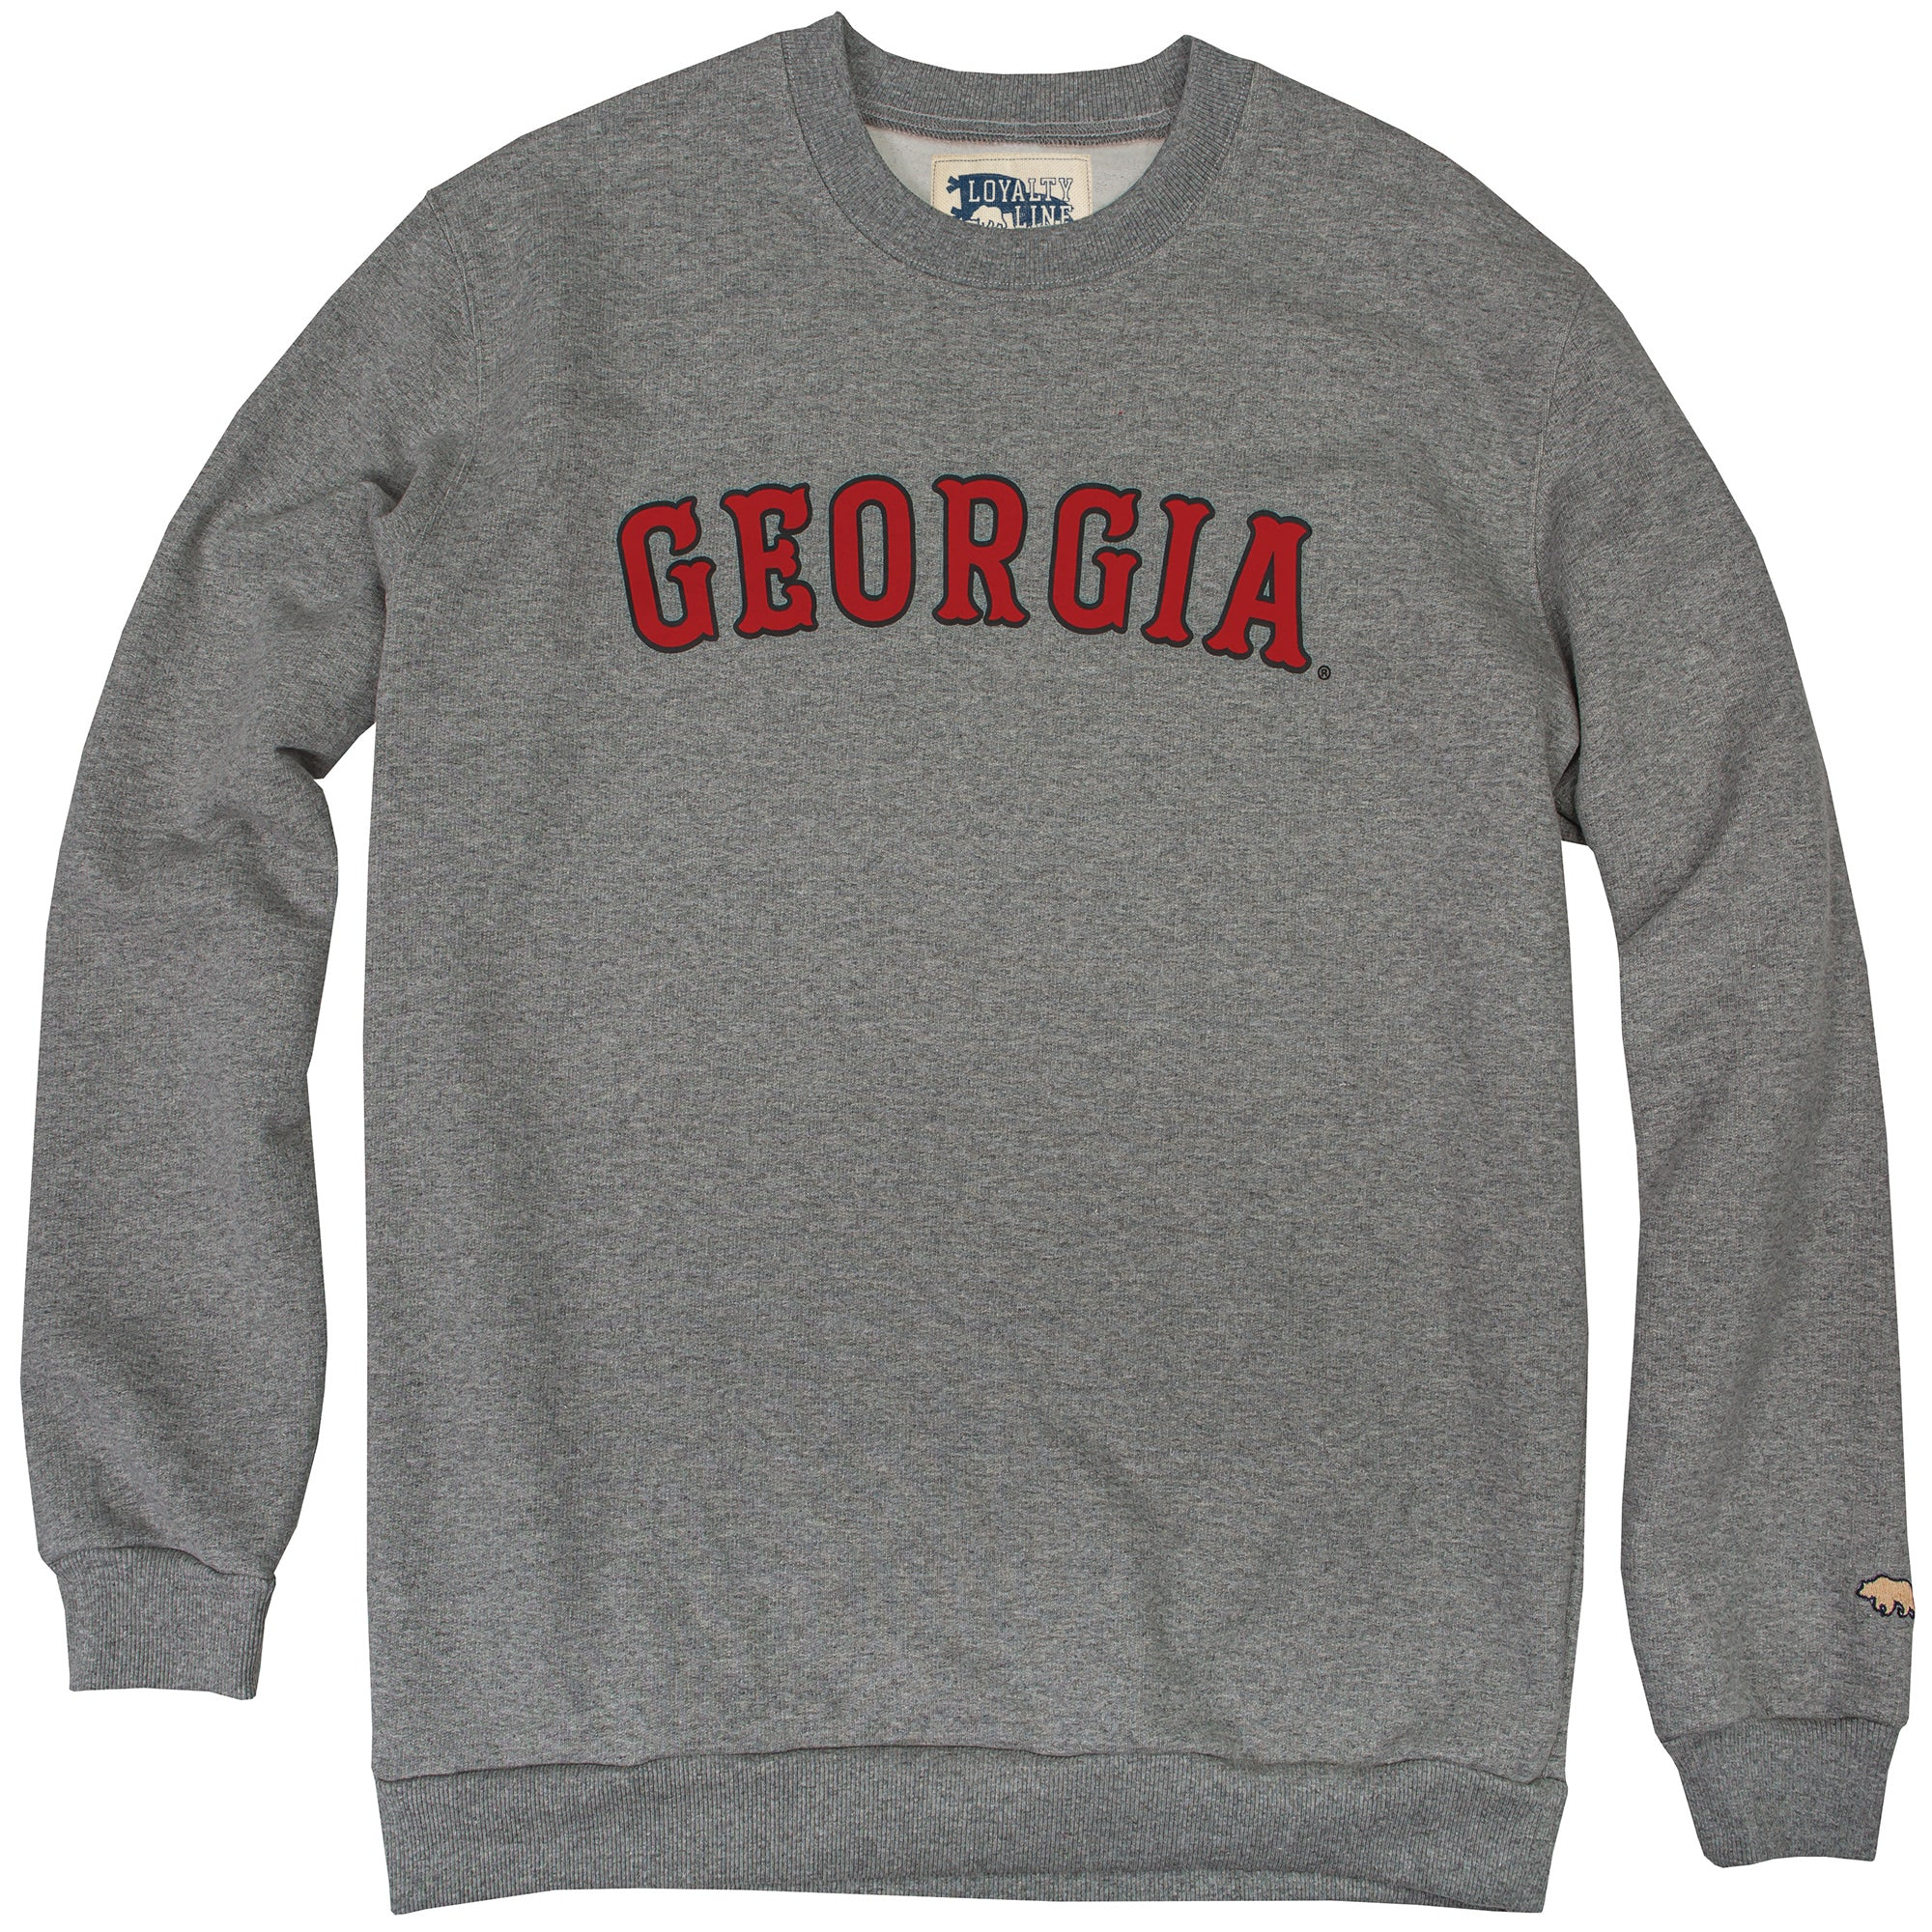 Georgia Loyalty Vintage Crew Neck Sweatshirt